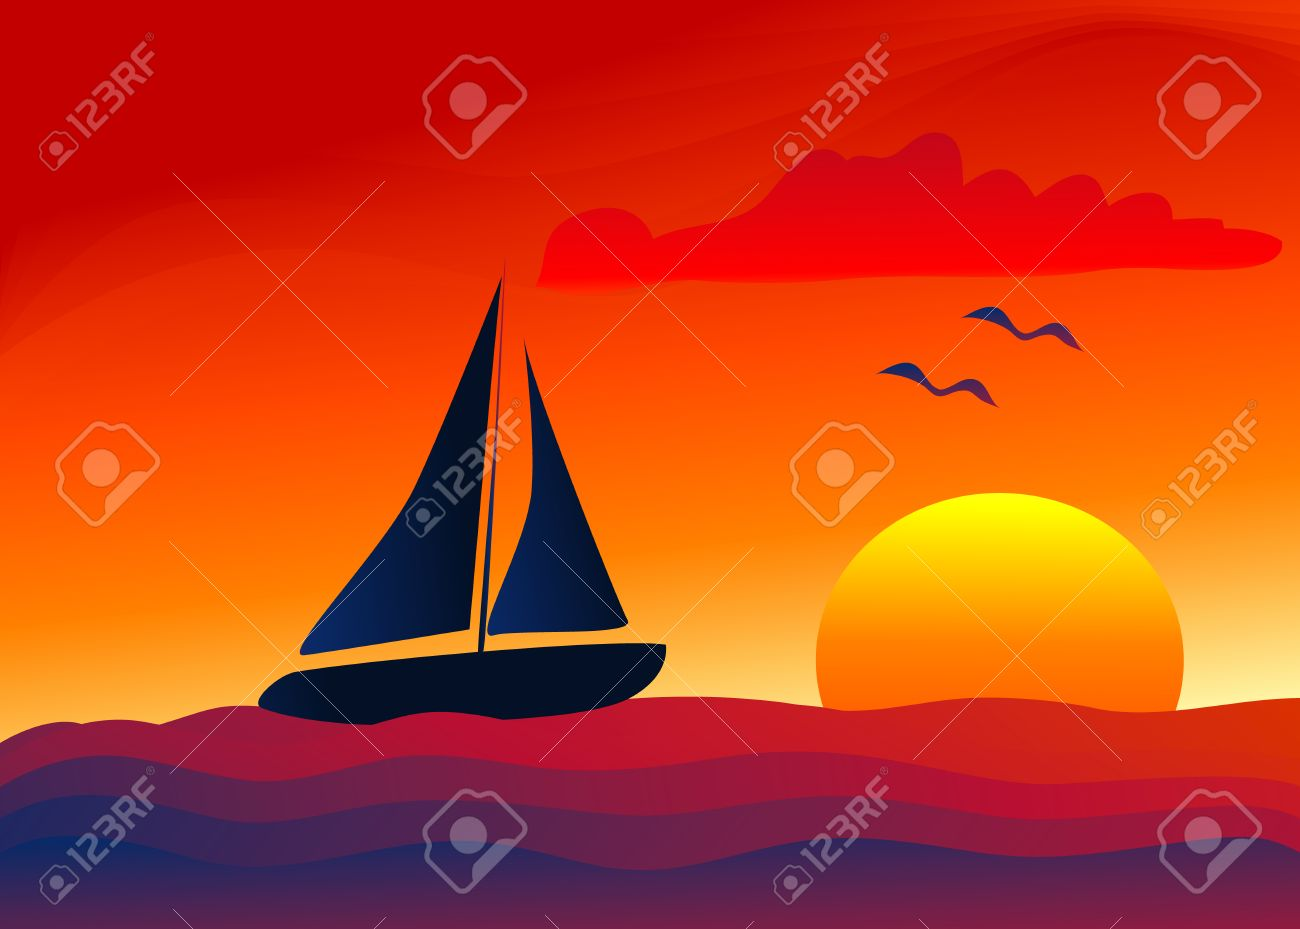 Sunset Sailing Boat Clip Art.